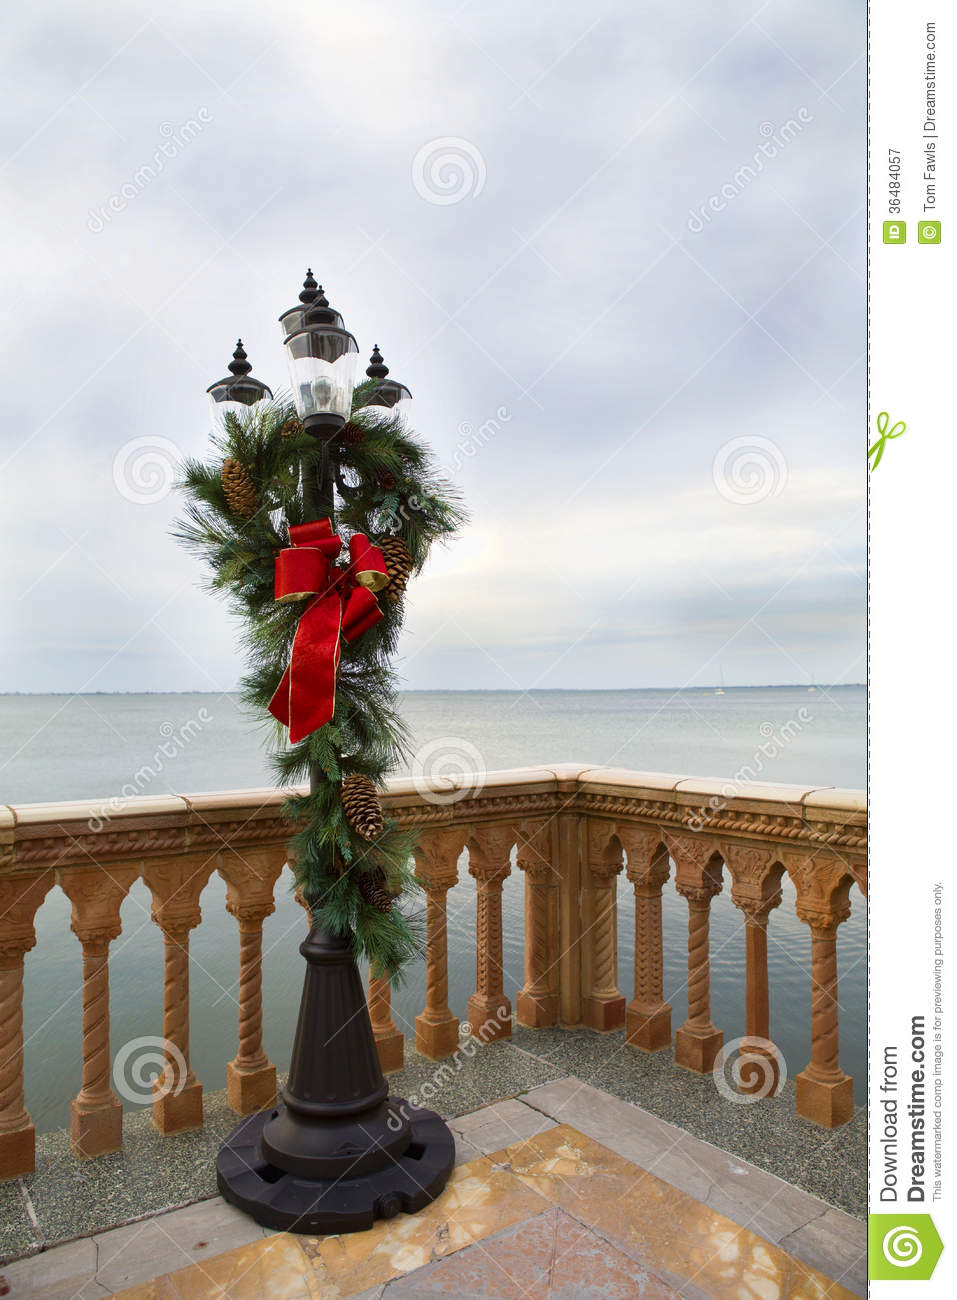 olde tyme lamp post decorated for christmas - Christmas Lamp Post Decoration